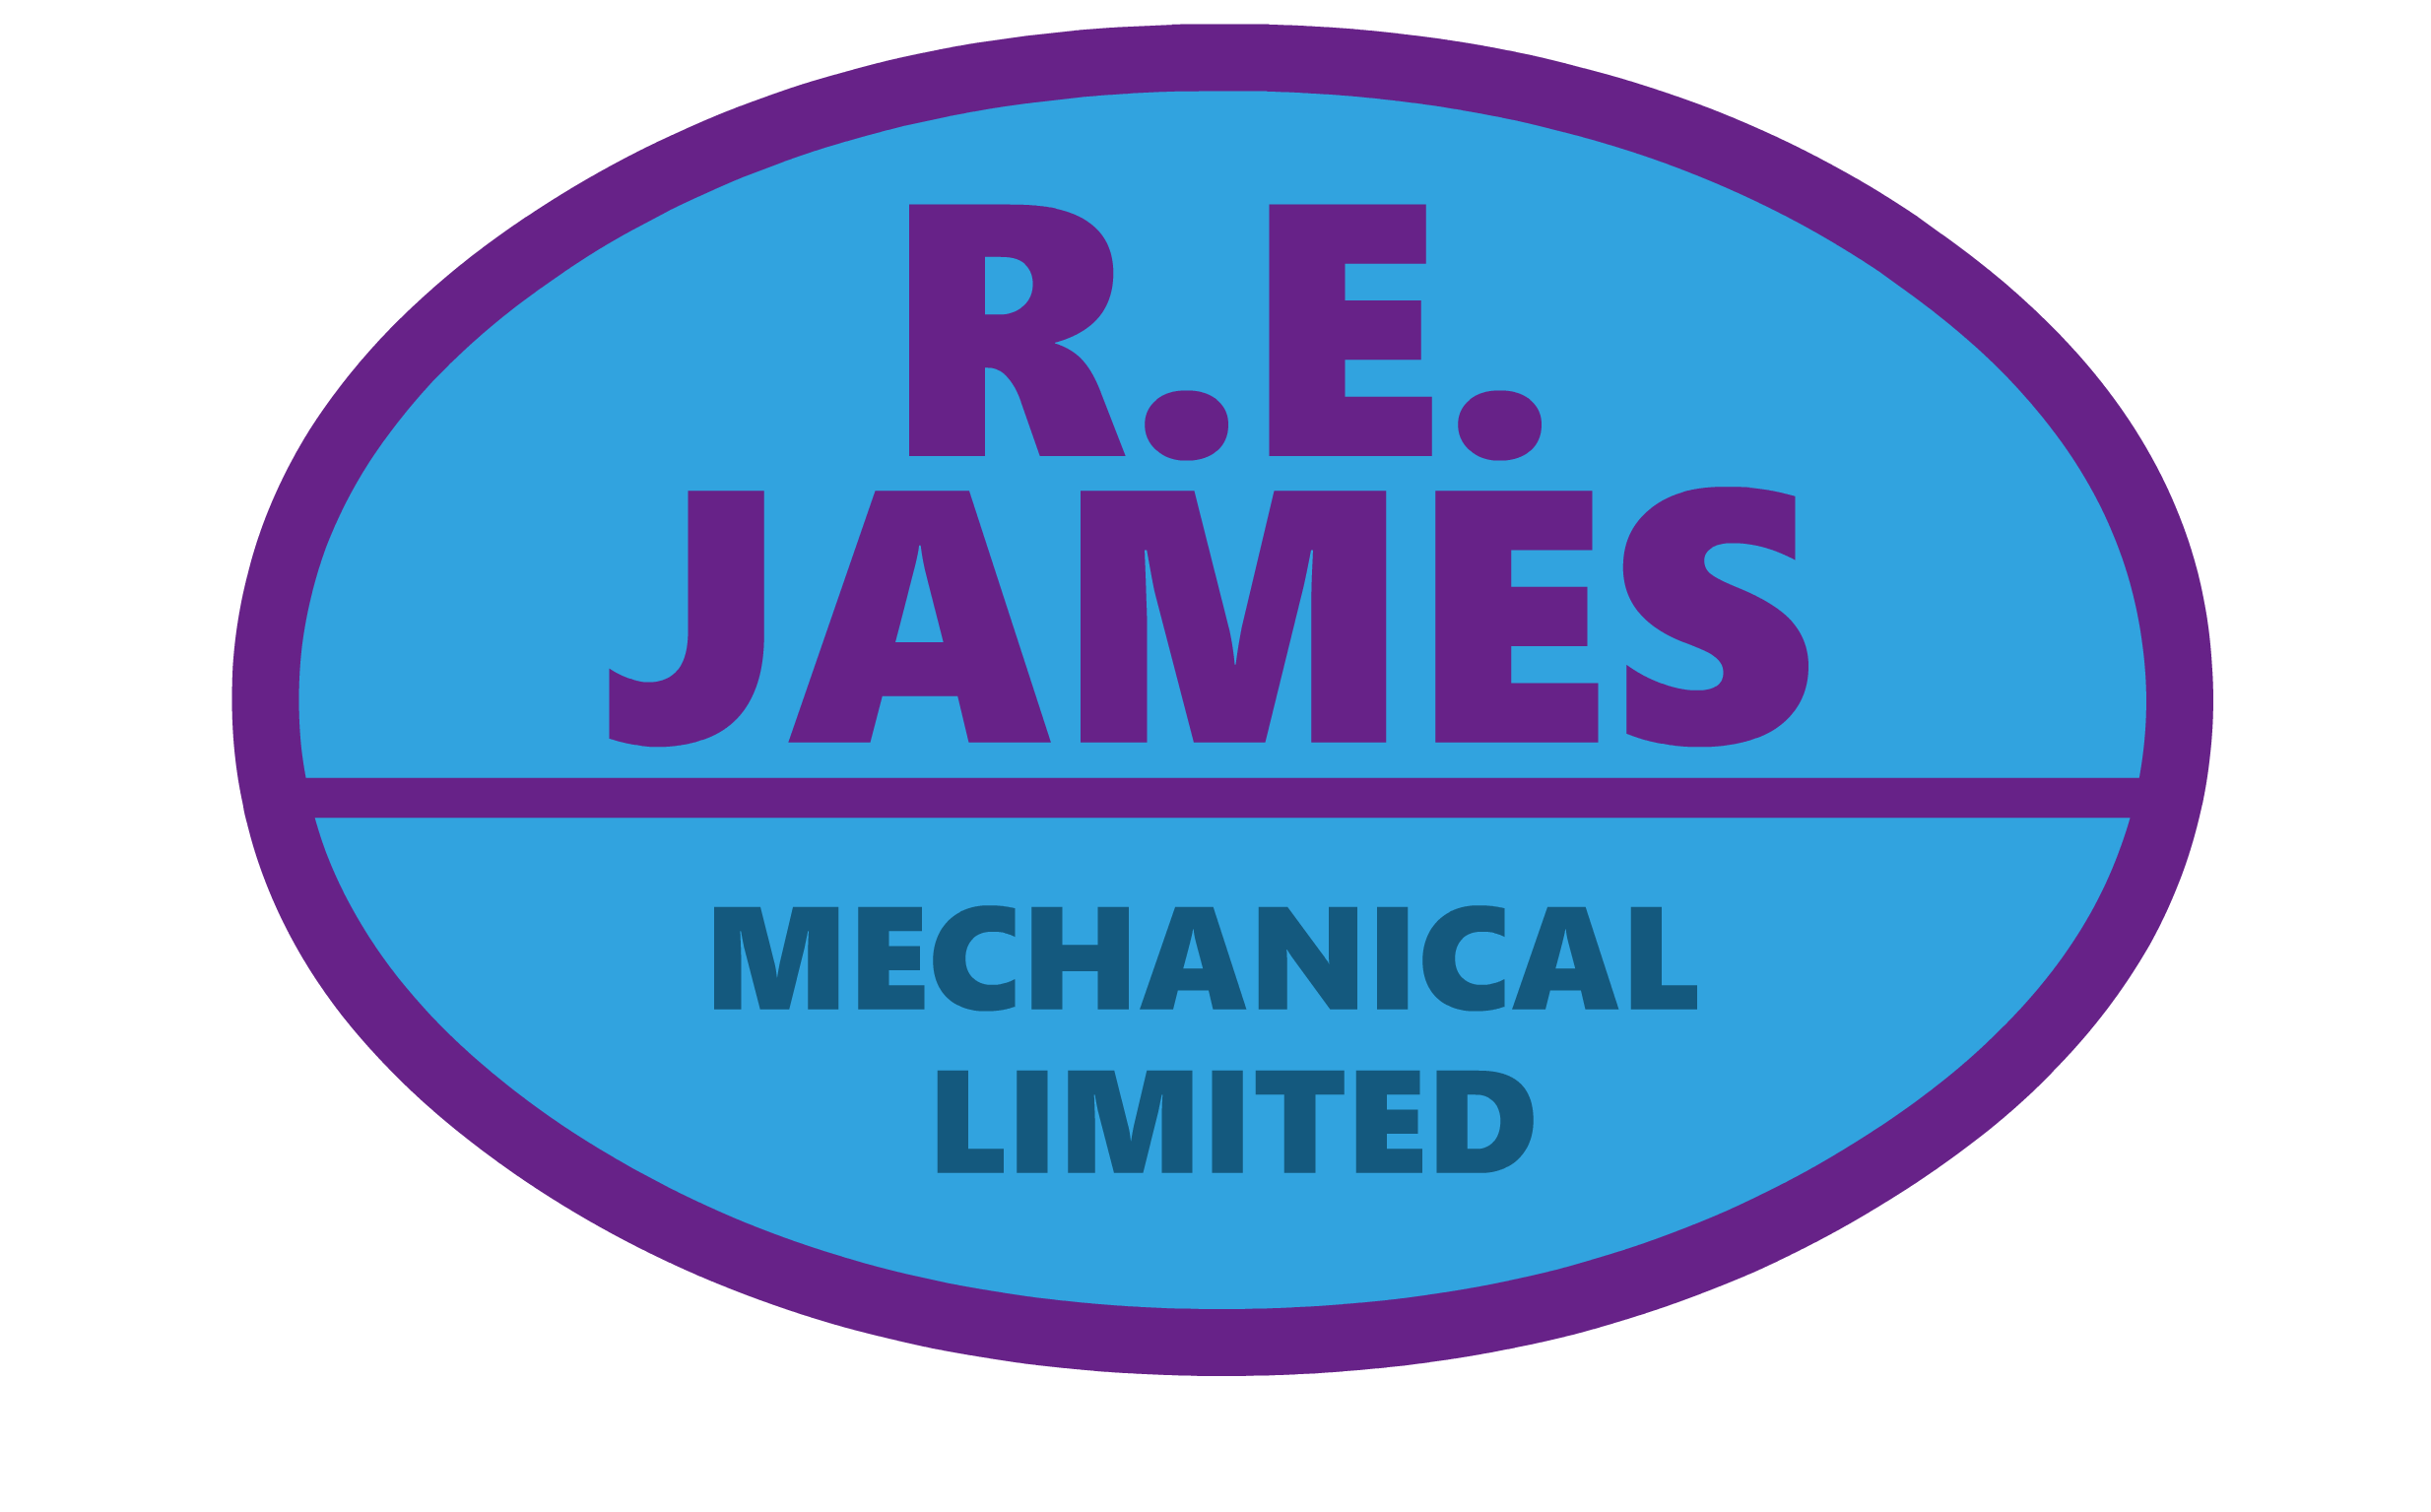 R E James Mechanical